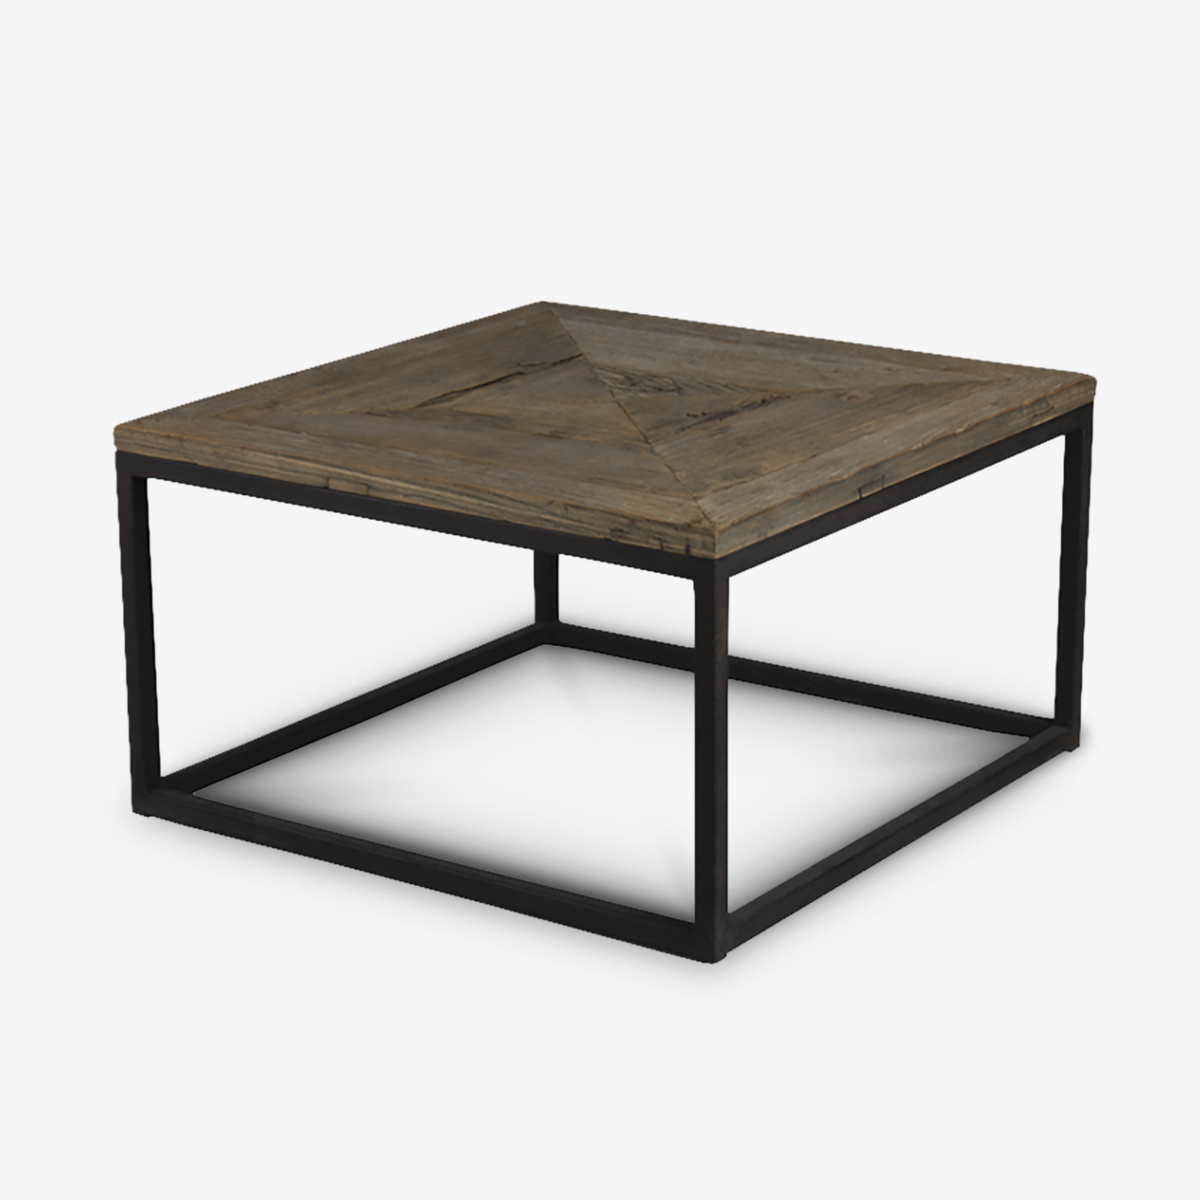 Wood For Coffee Table Top: Wooden Top Coffee Table